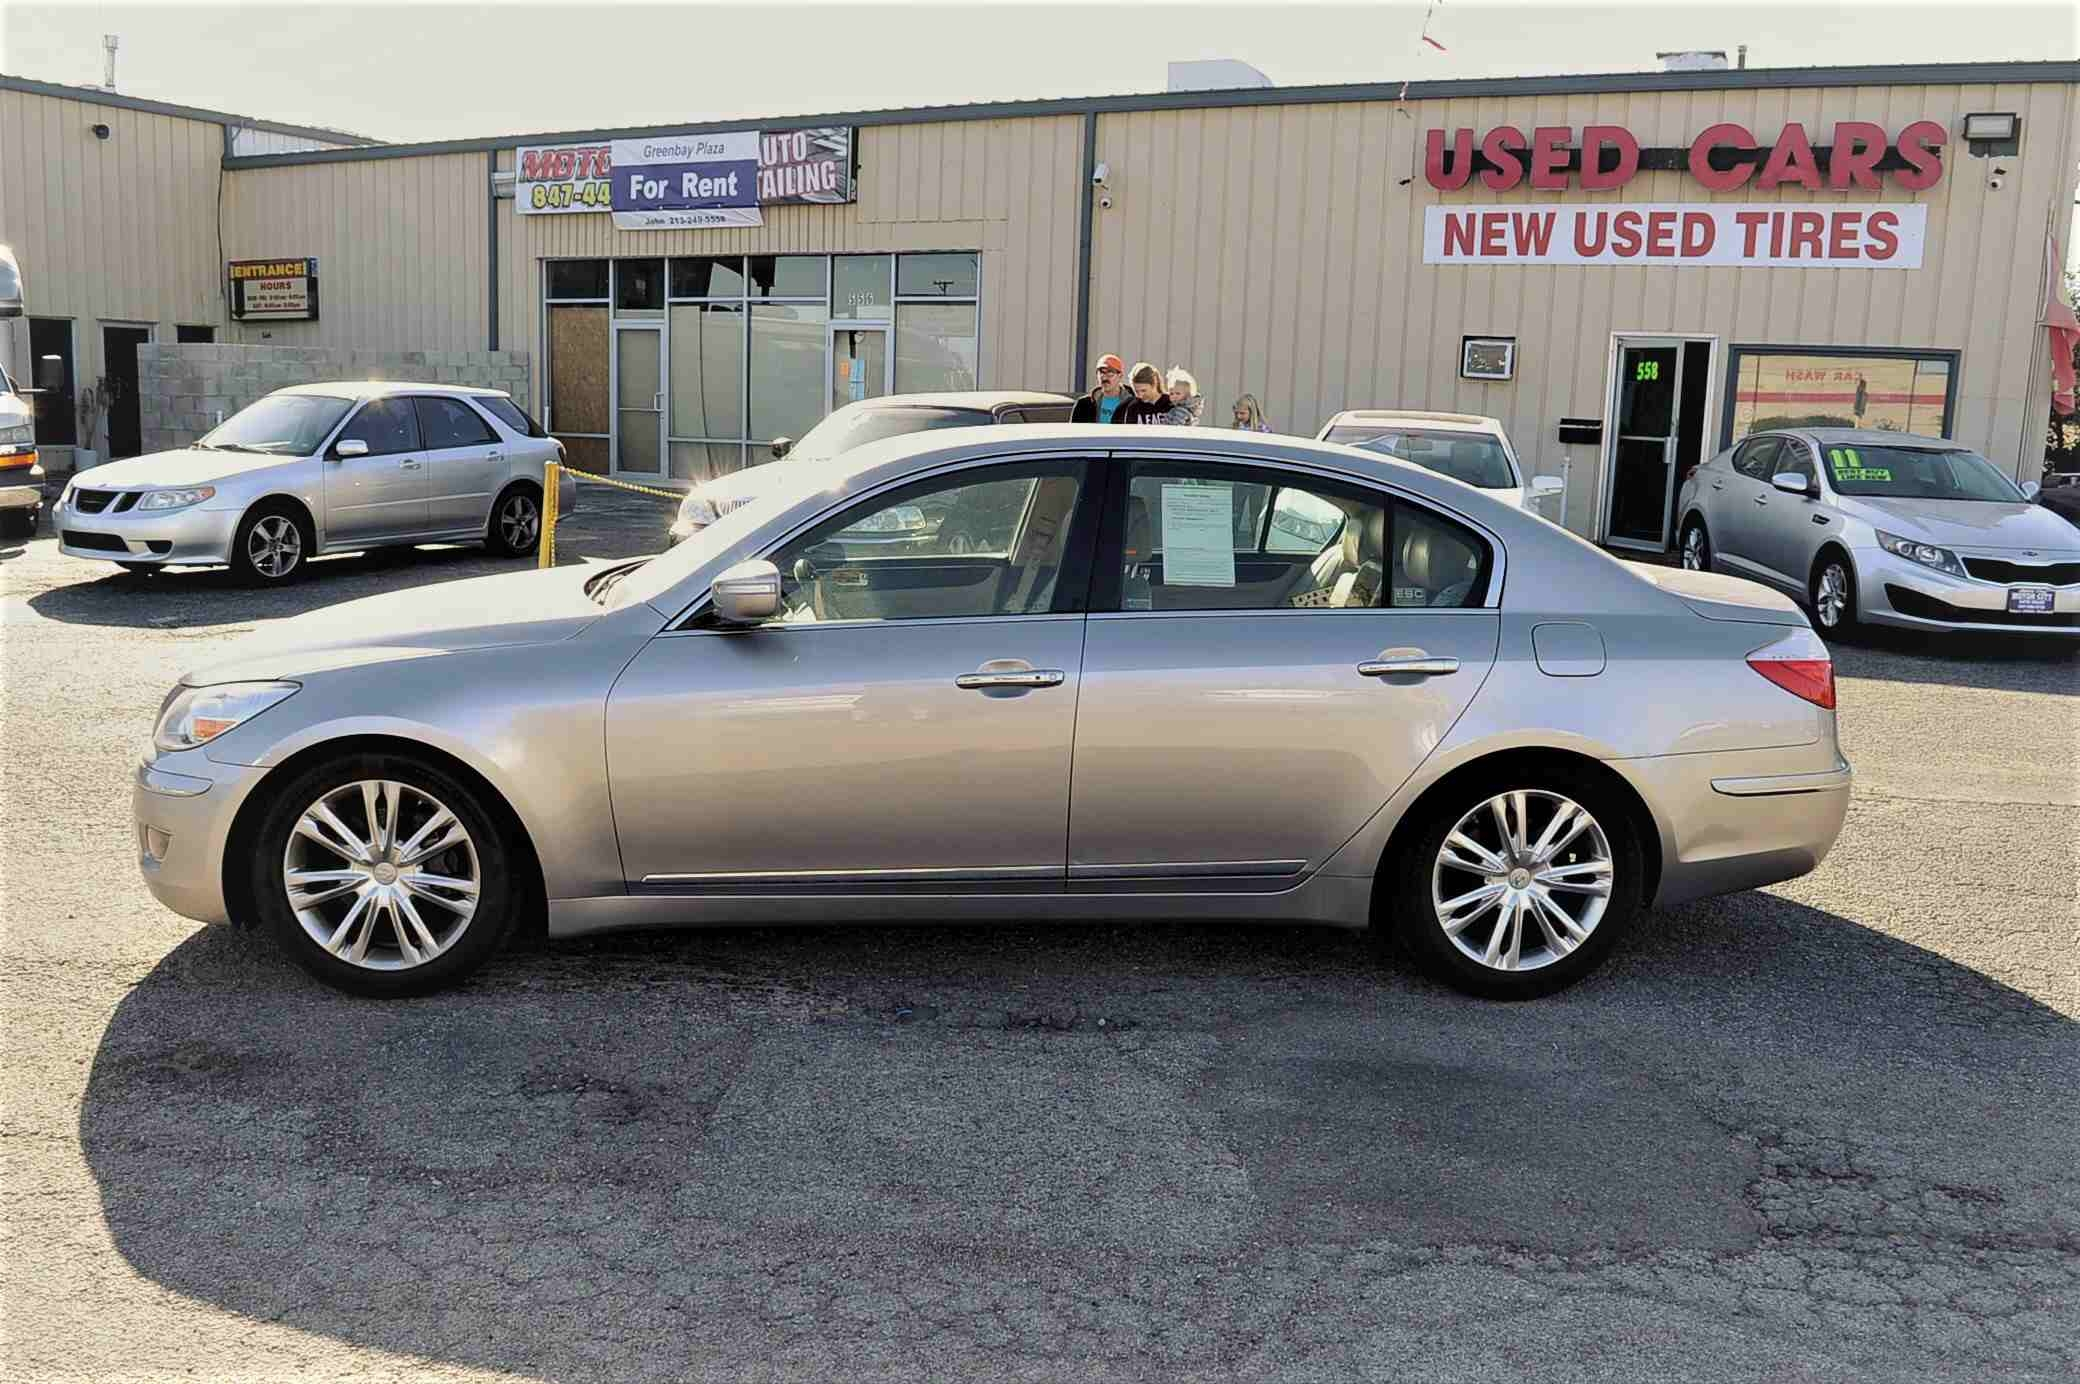 2009 Hyundai Genesis Silver Sedan Used Car Sale Bannockburn Barrington Beach Park